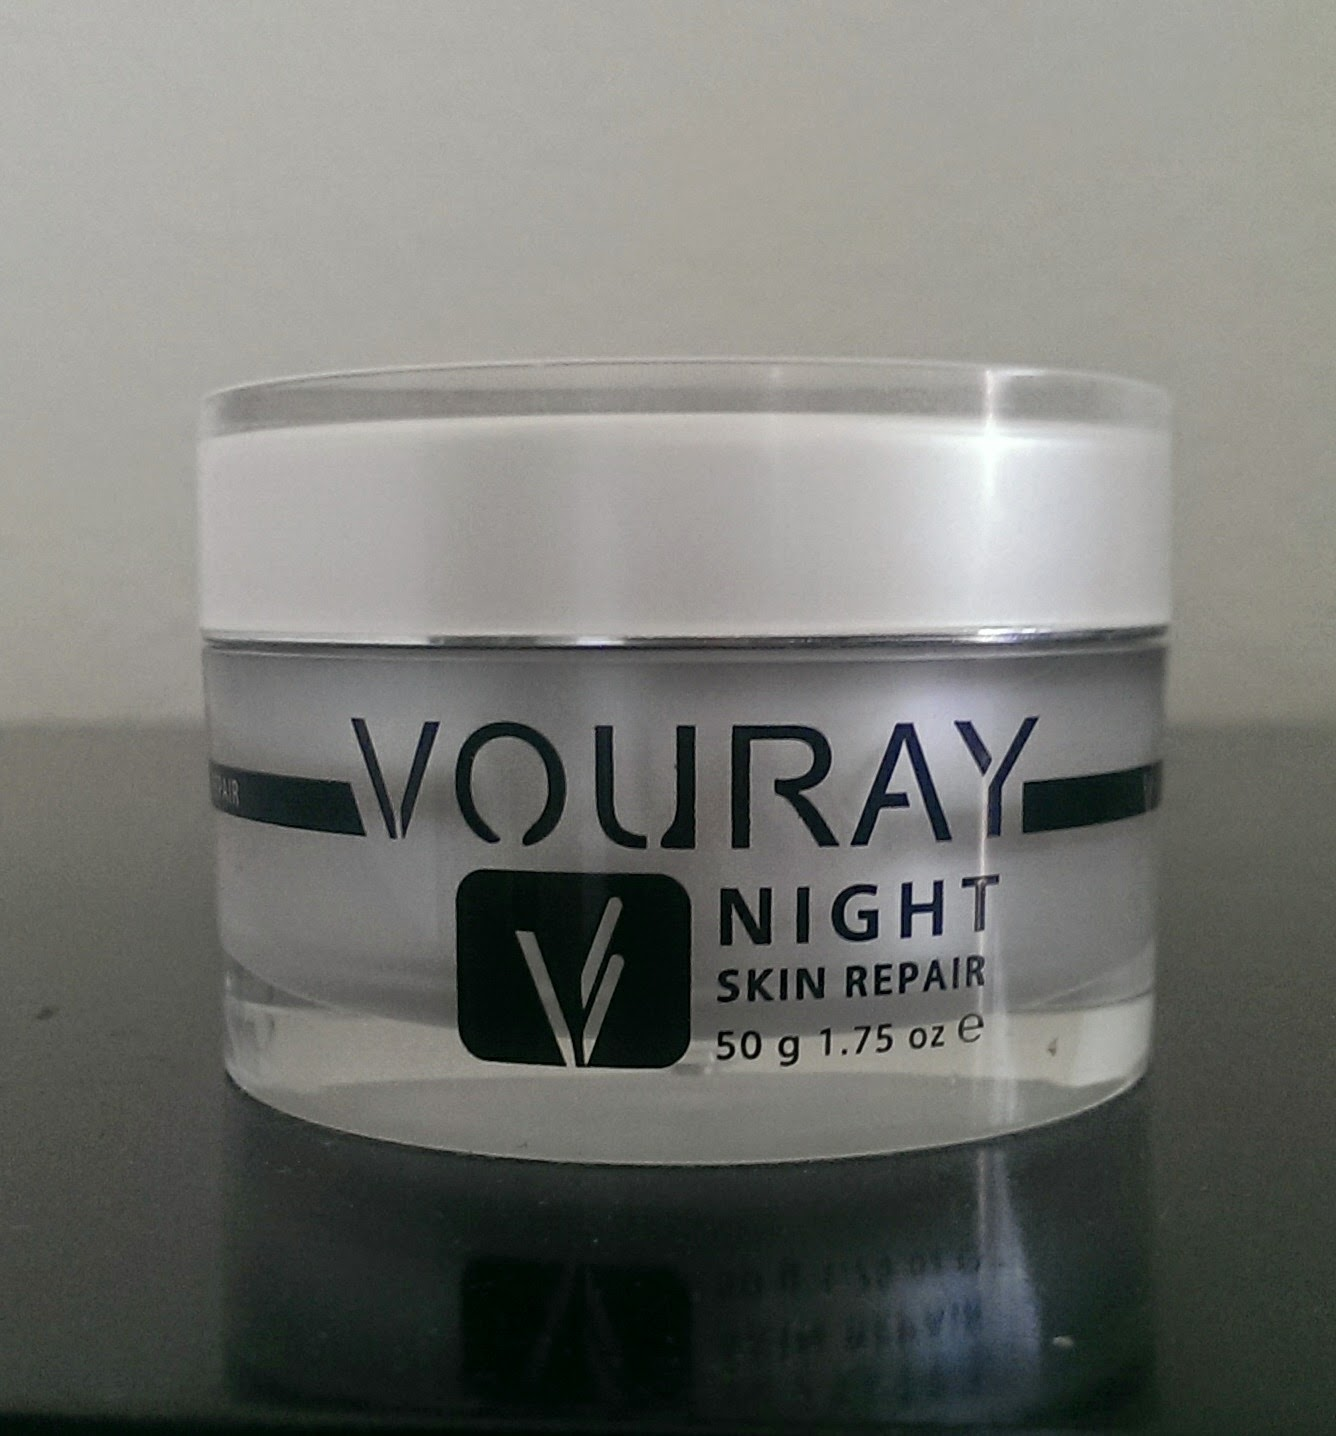 Nght+Cream Vouray Night Skin Repair Review - Best Night Face Moisturizer